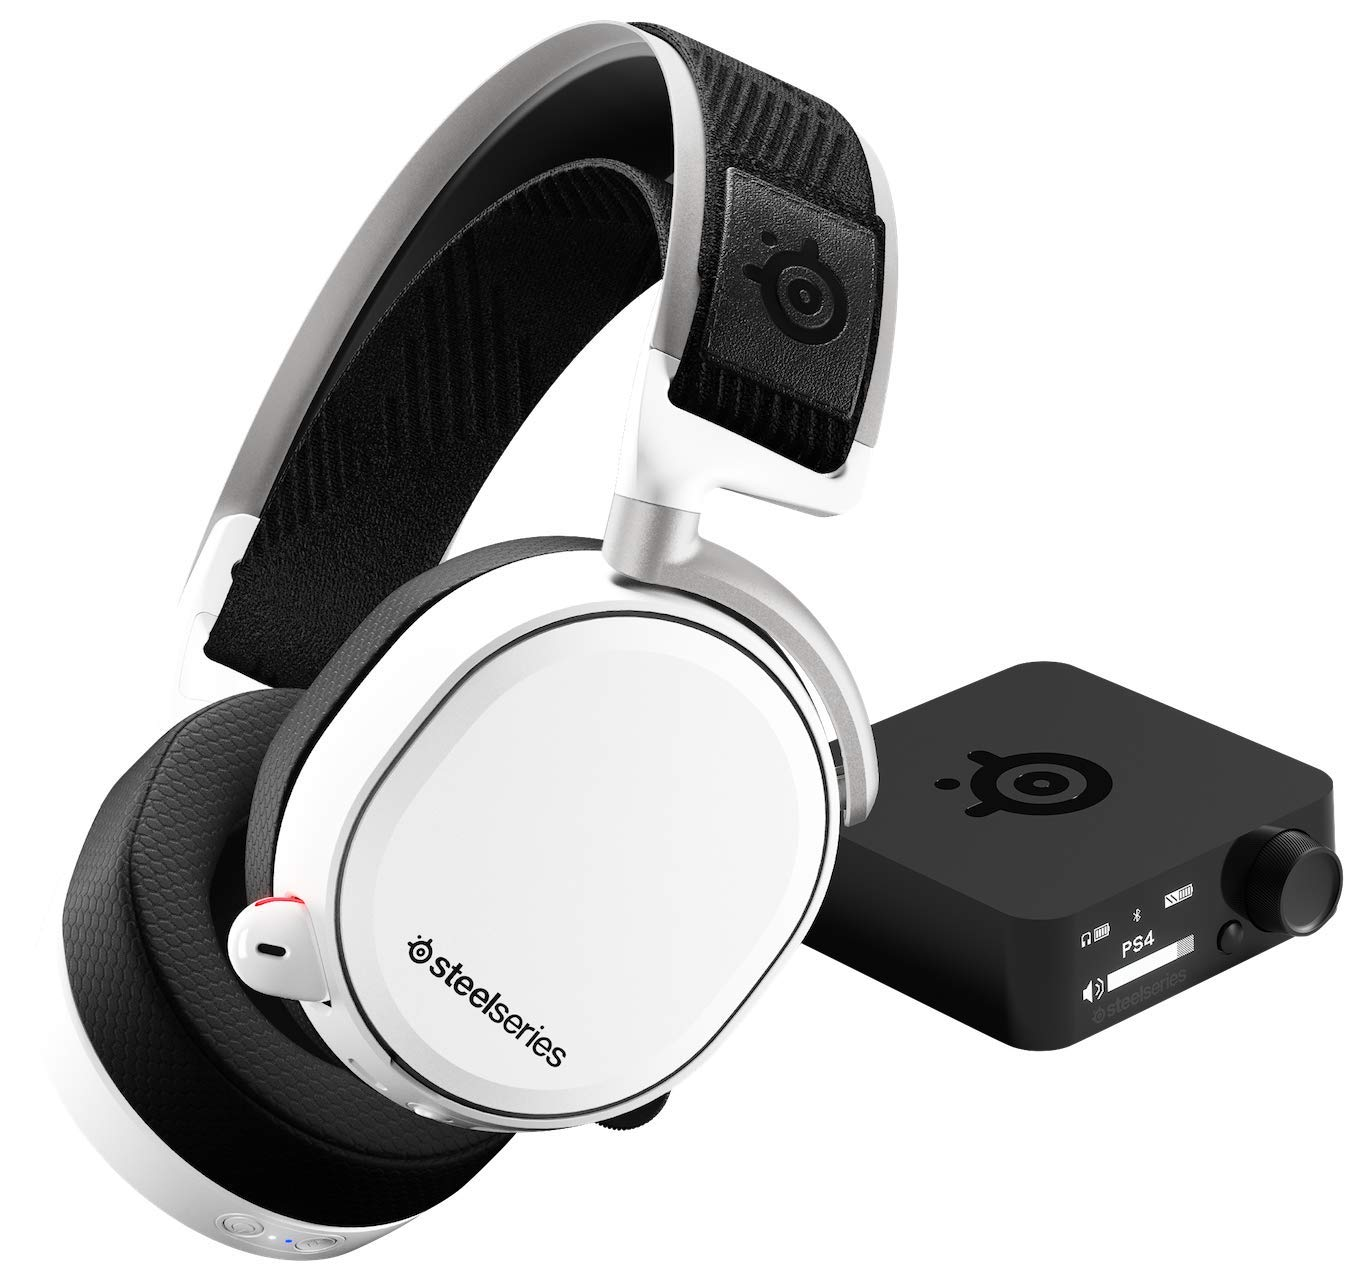 30cb637d681 SteelSeries Arctis Pro Wireless - Gaming Headset - Hi-Res Speaker Drivers -  Dual Wireless (2.4G & Bluetooth) - Dual Battery System - White:  Amazon.co.uk: PC ...